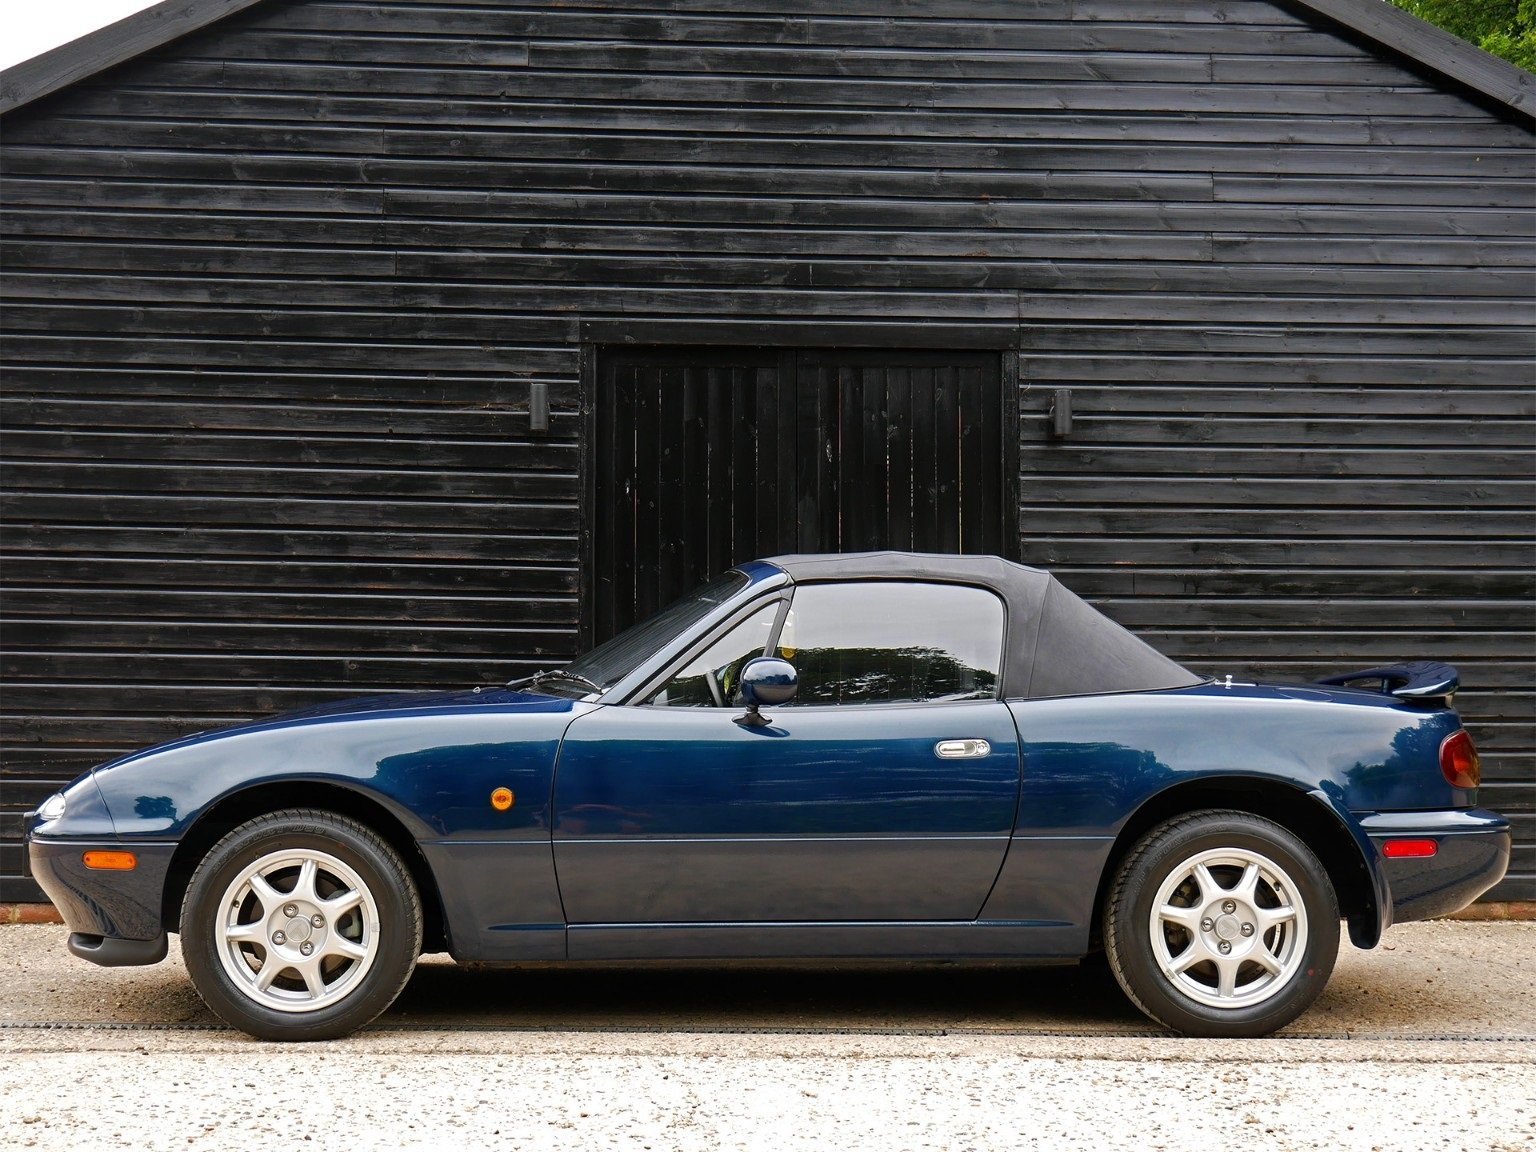 1997 Mazda MX-5 S-Special 1, 1.8 - Eunos Roadster - 3,000 MILES For Sale (picture 2 of 6)